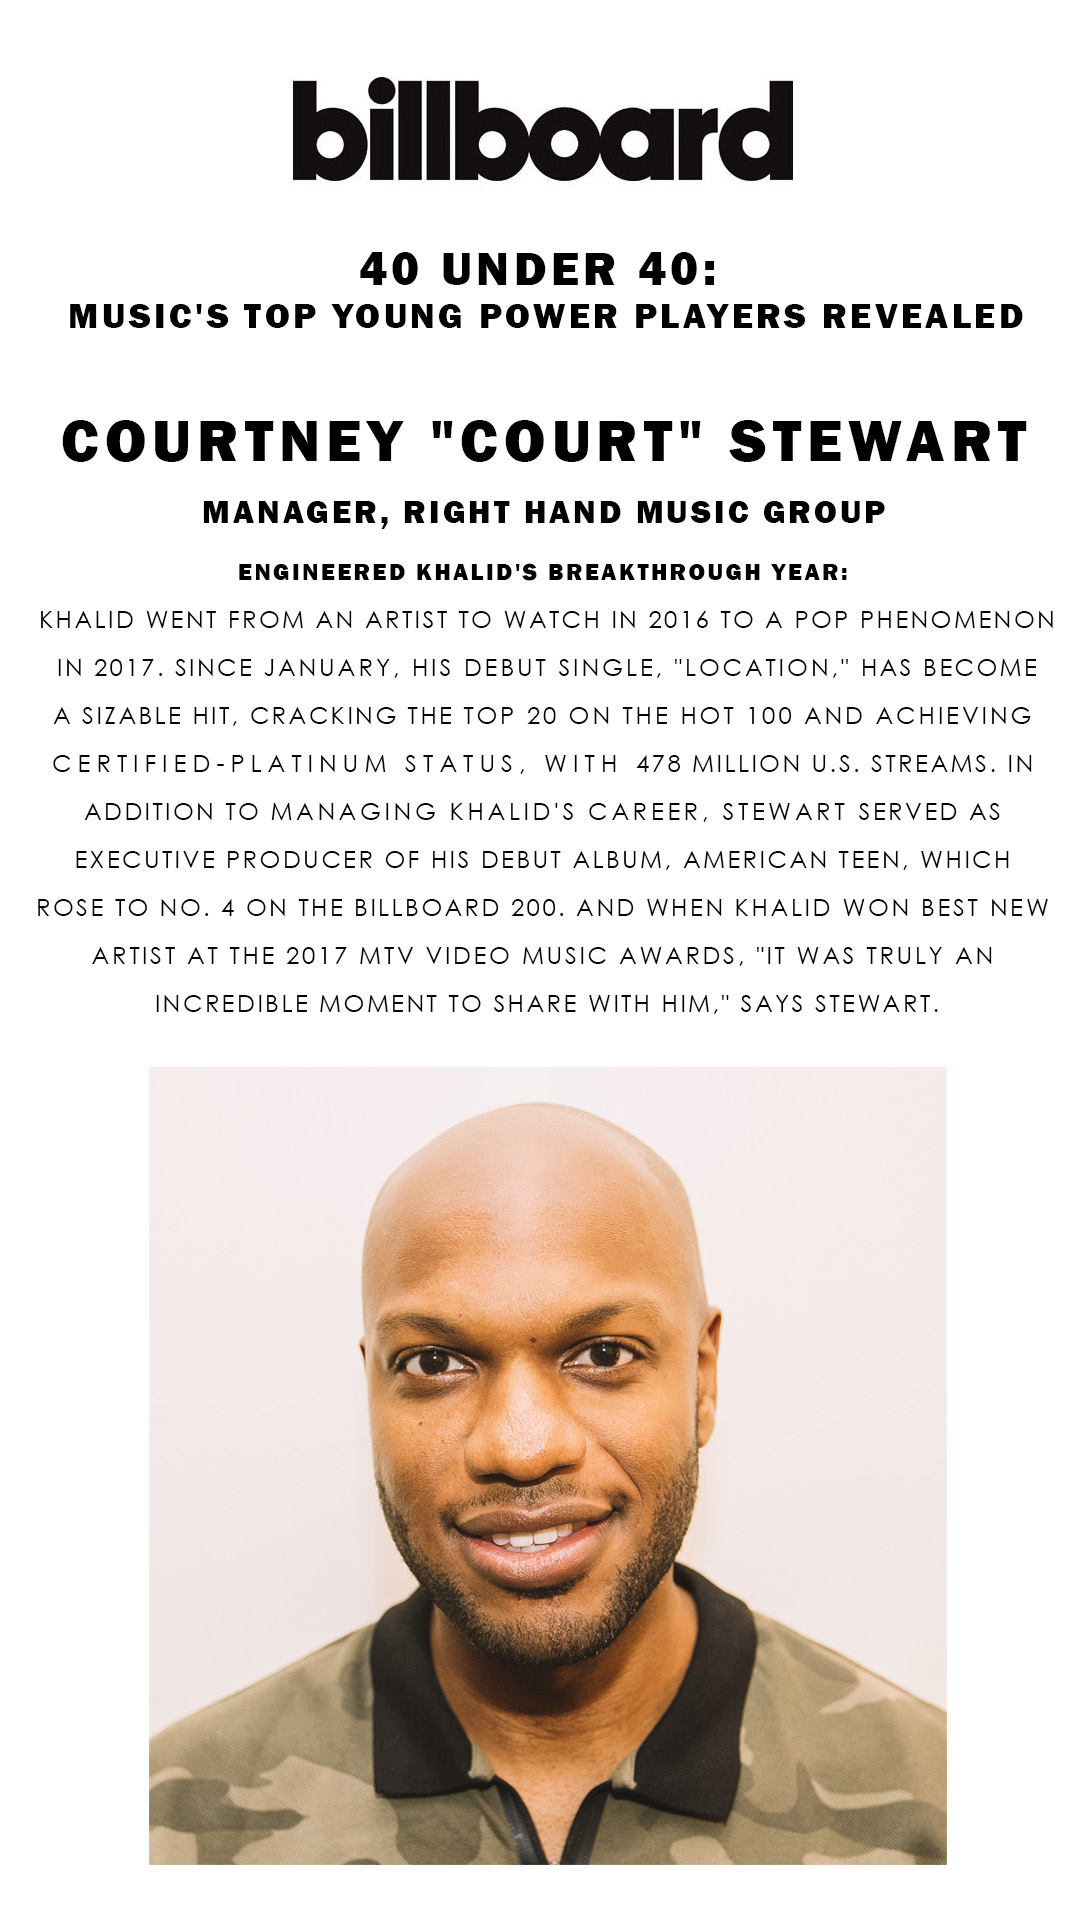 Courtney Stewart - RHMG Billboard 40 under 40 - IG Stories.jpg